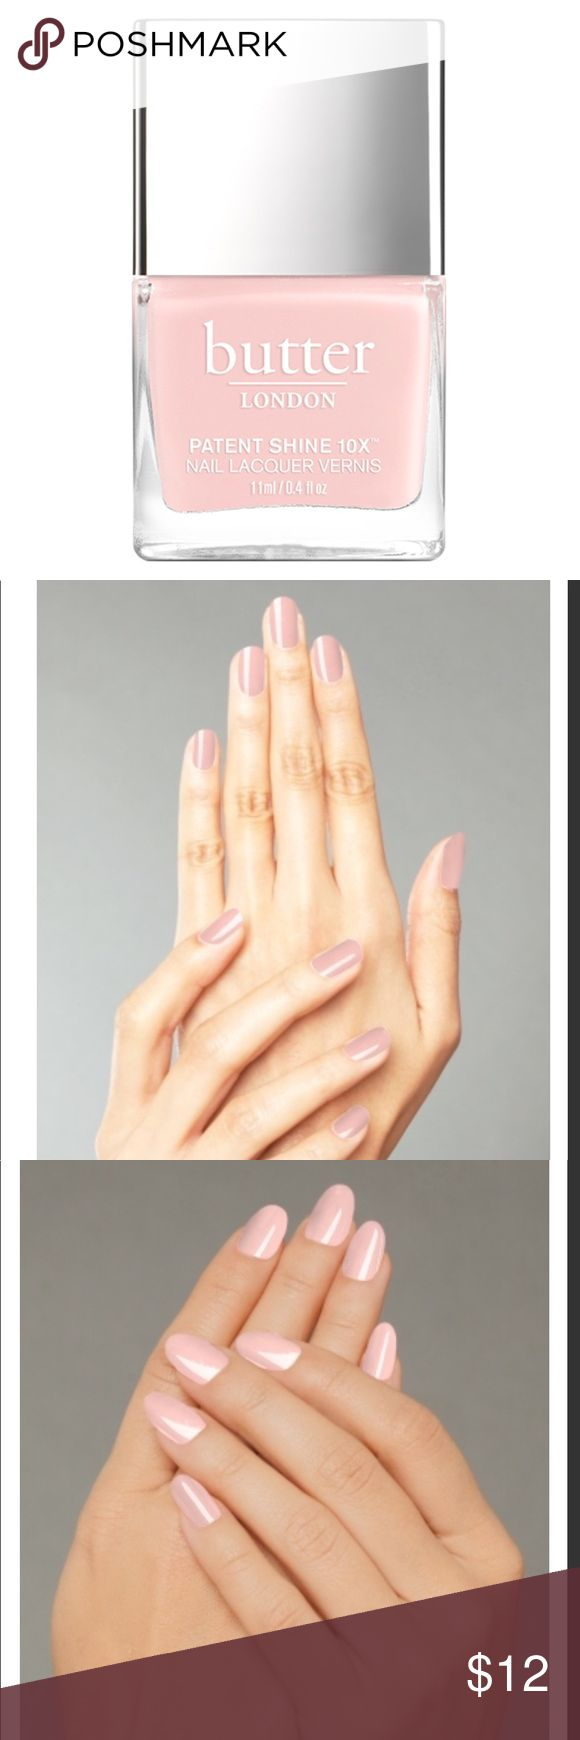 Star dust nail lacquer guerlain 25 - New Butter London Nail Polish A Soft Light Pink Cr Me Nail Polish With Full Coverage And